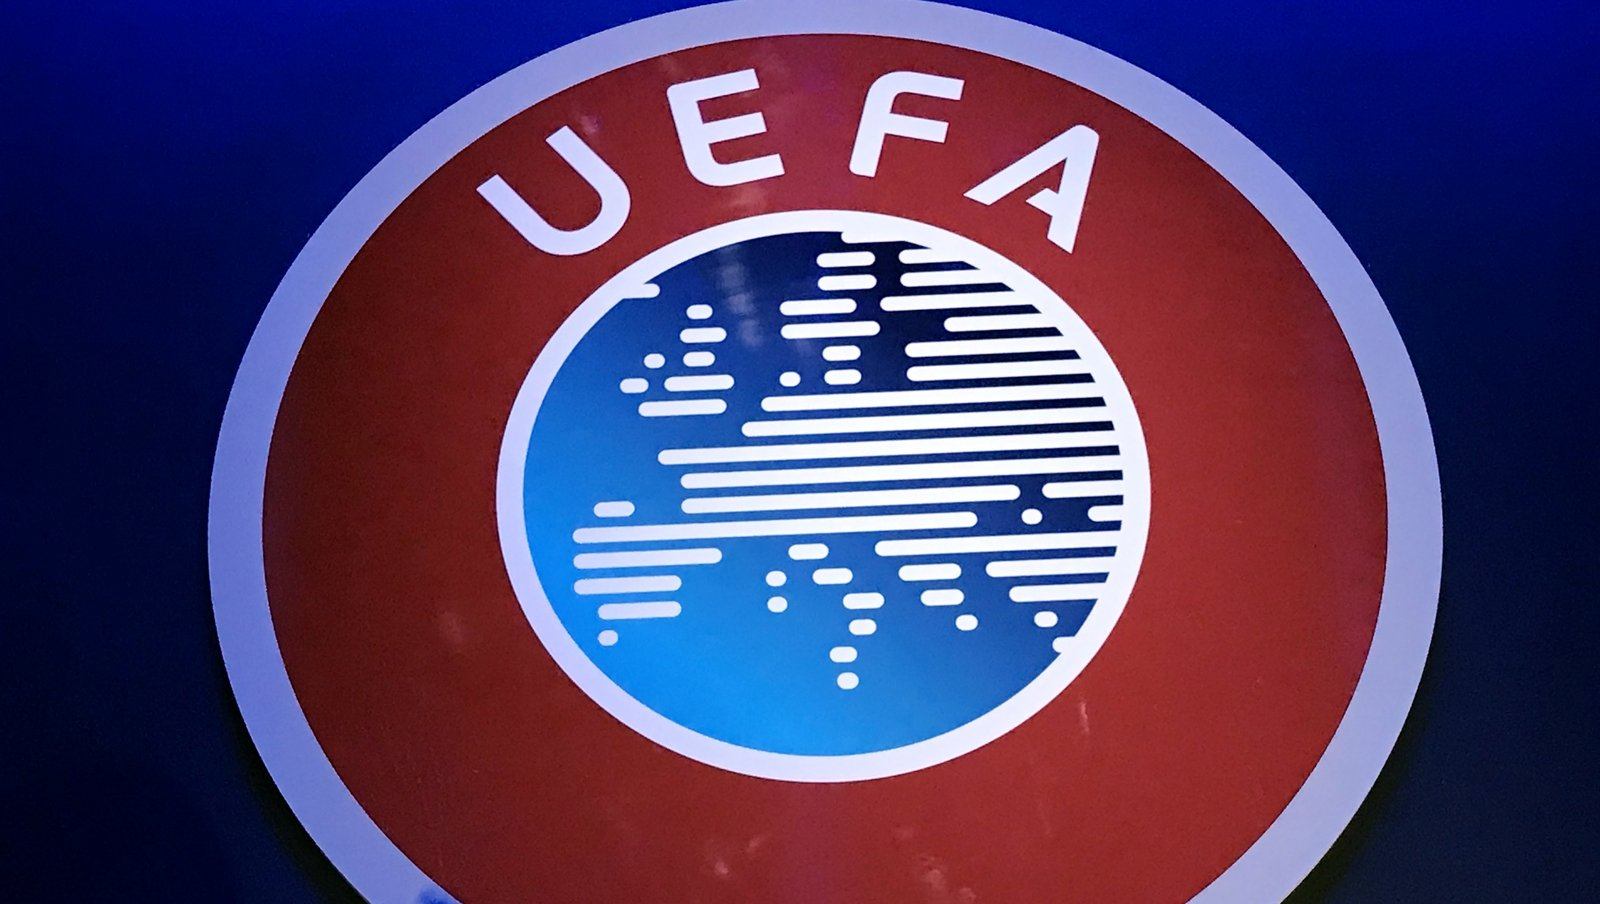 UEFA secures court direct to dam illegal streaming